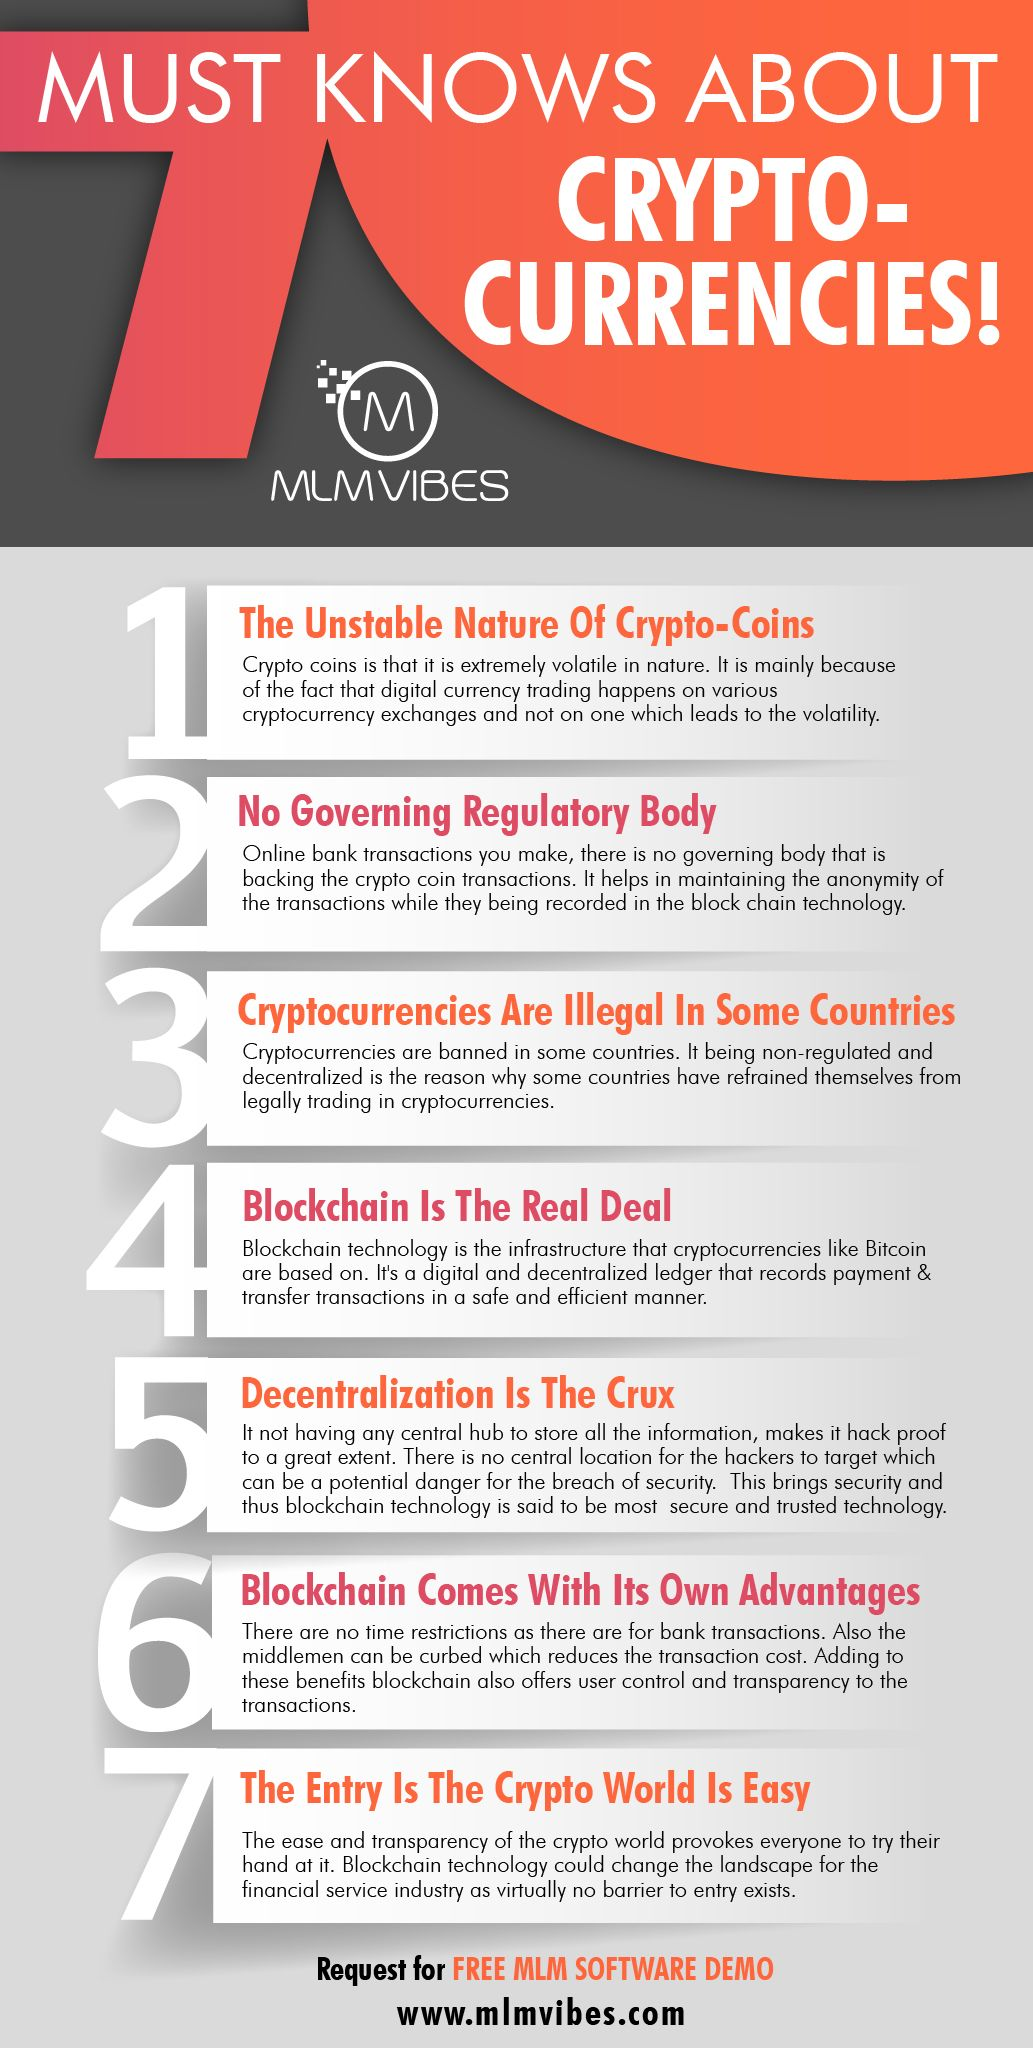 One Of The Biggest Features Of Cryptocurrency Is It Is